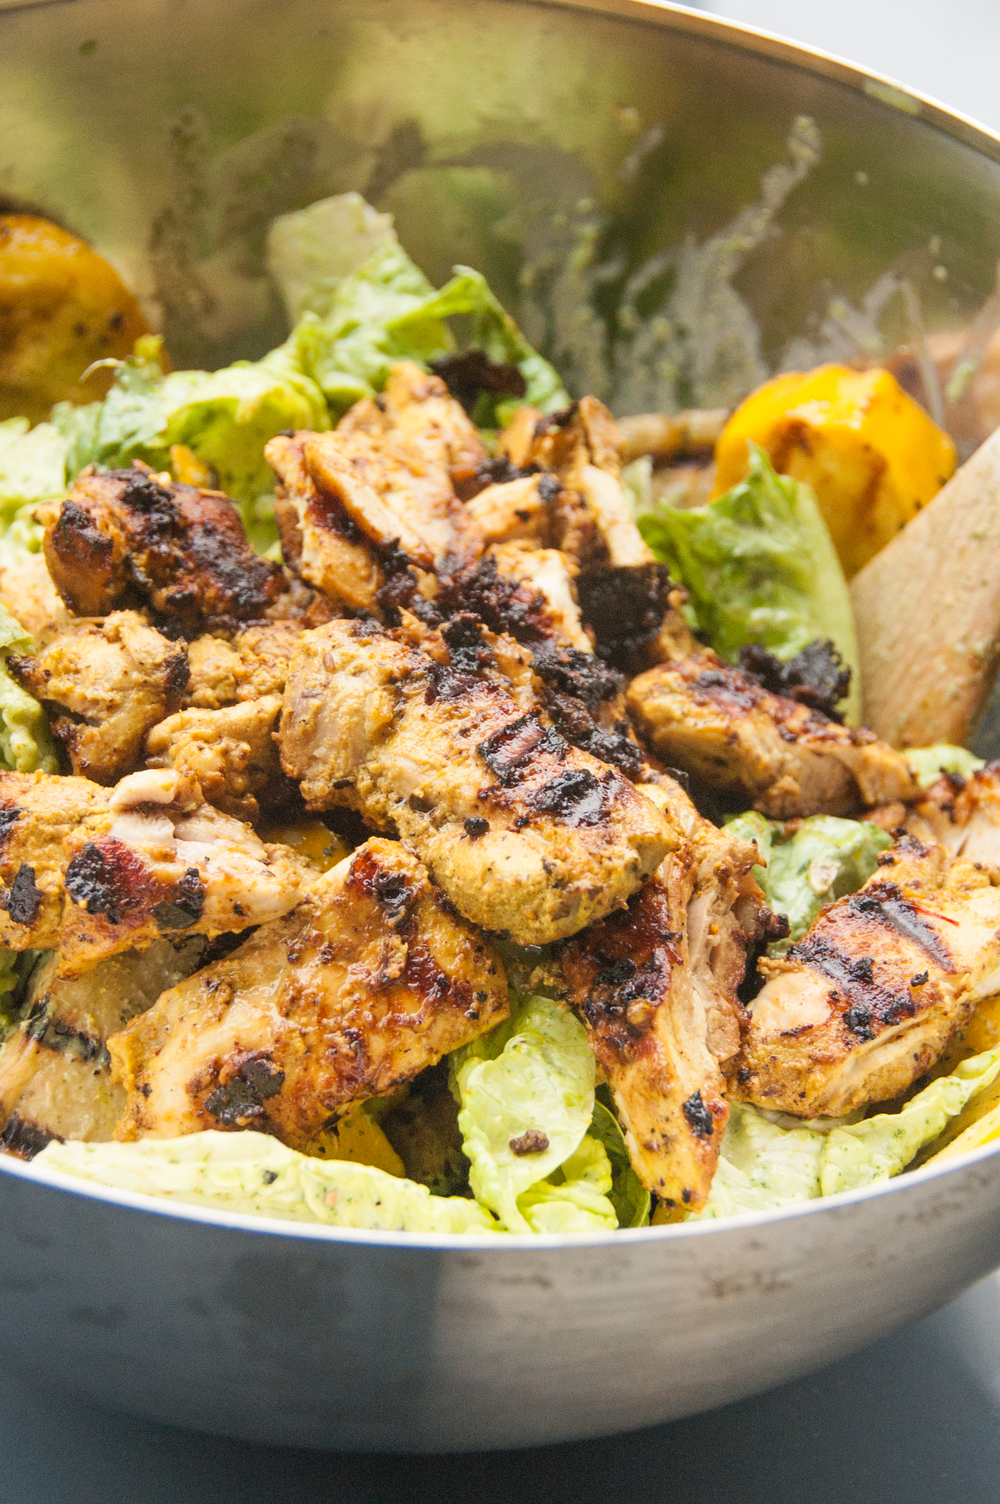 Chicken tikka salad with mint chutney - a perfect pairing of eastern and western kitchen traditions